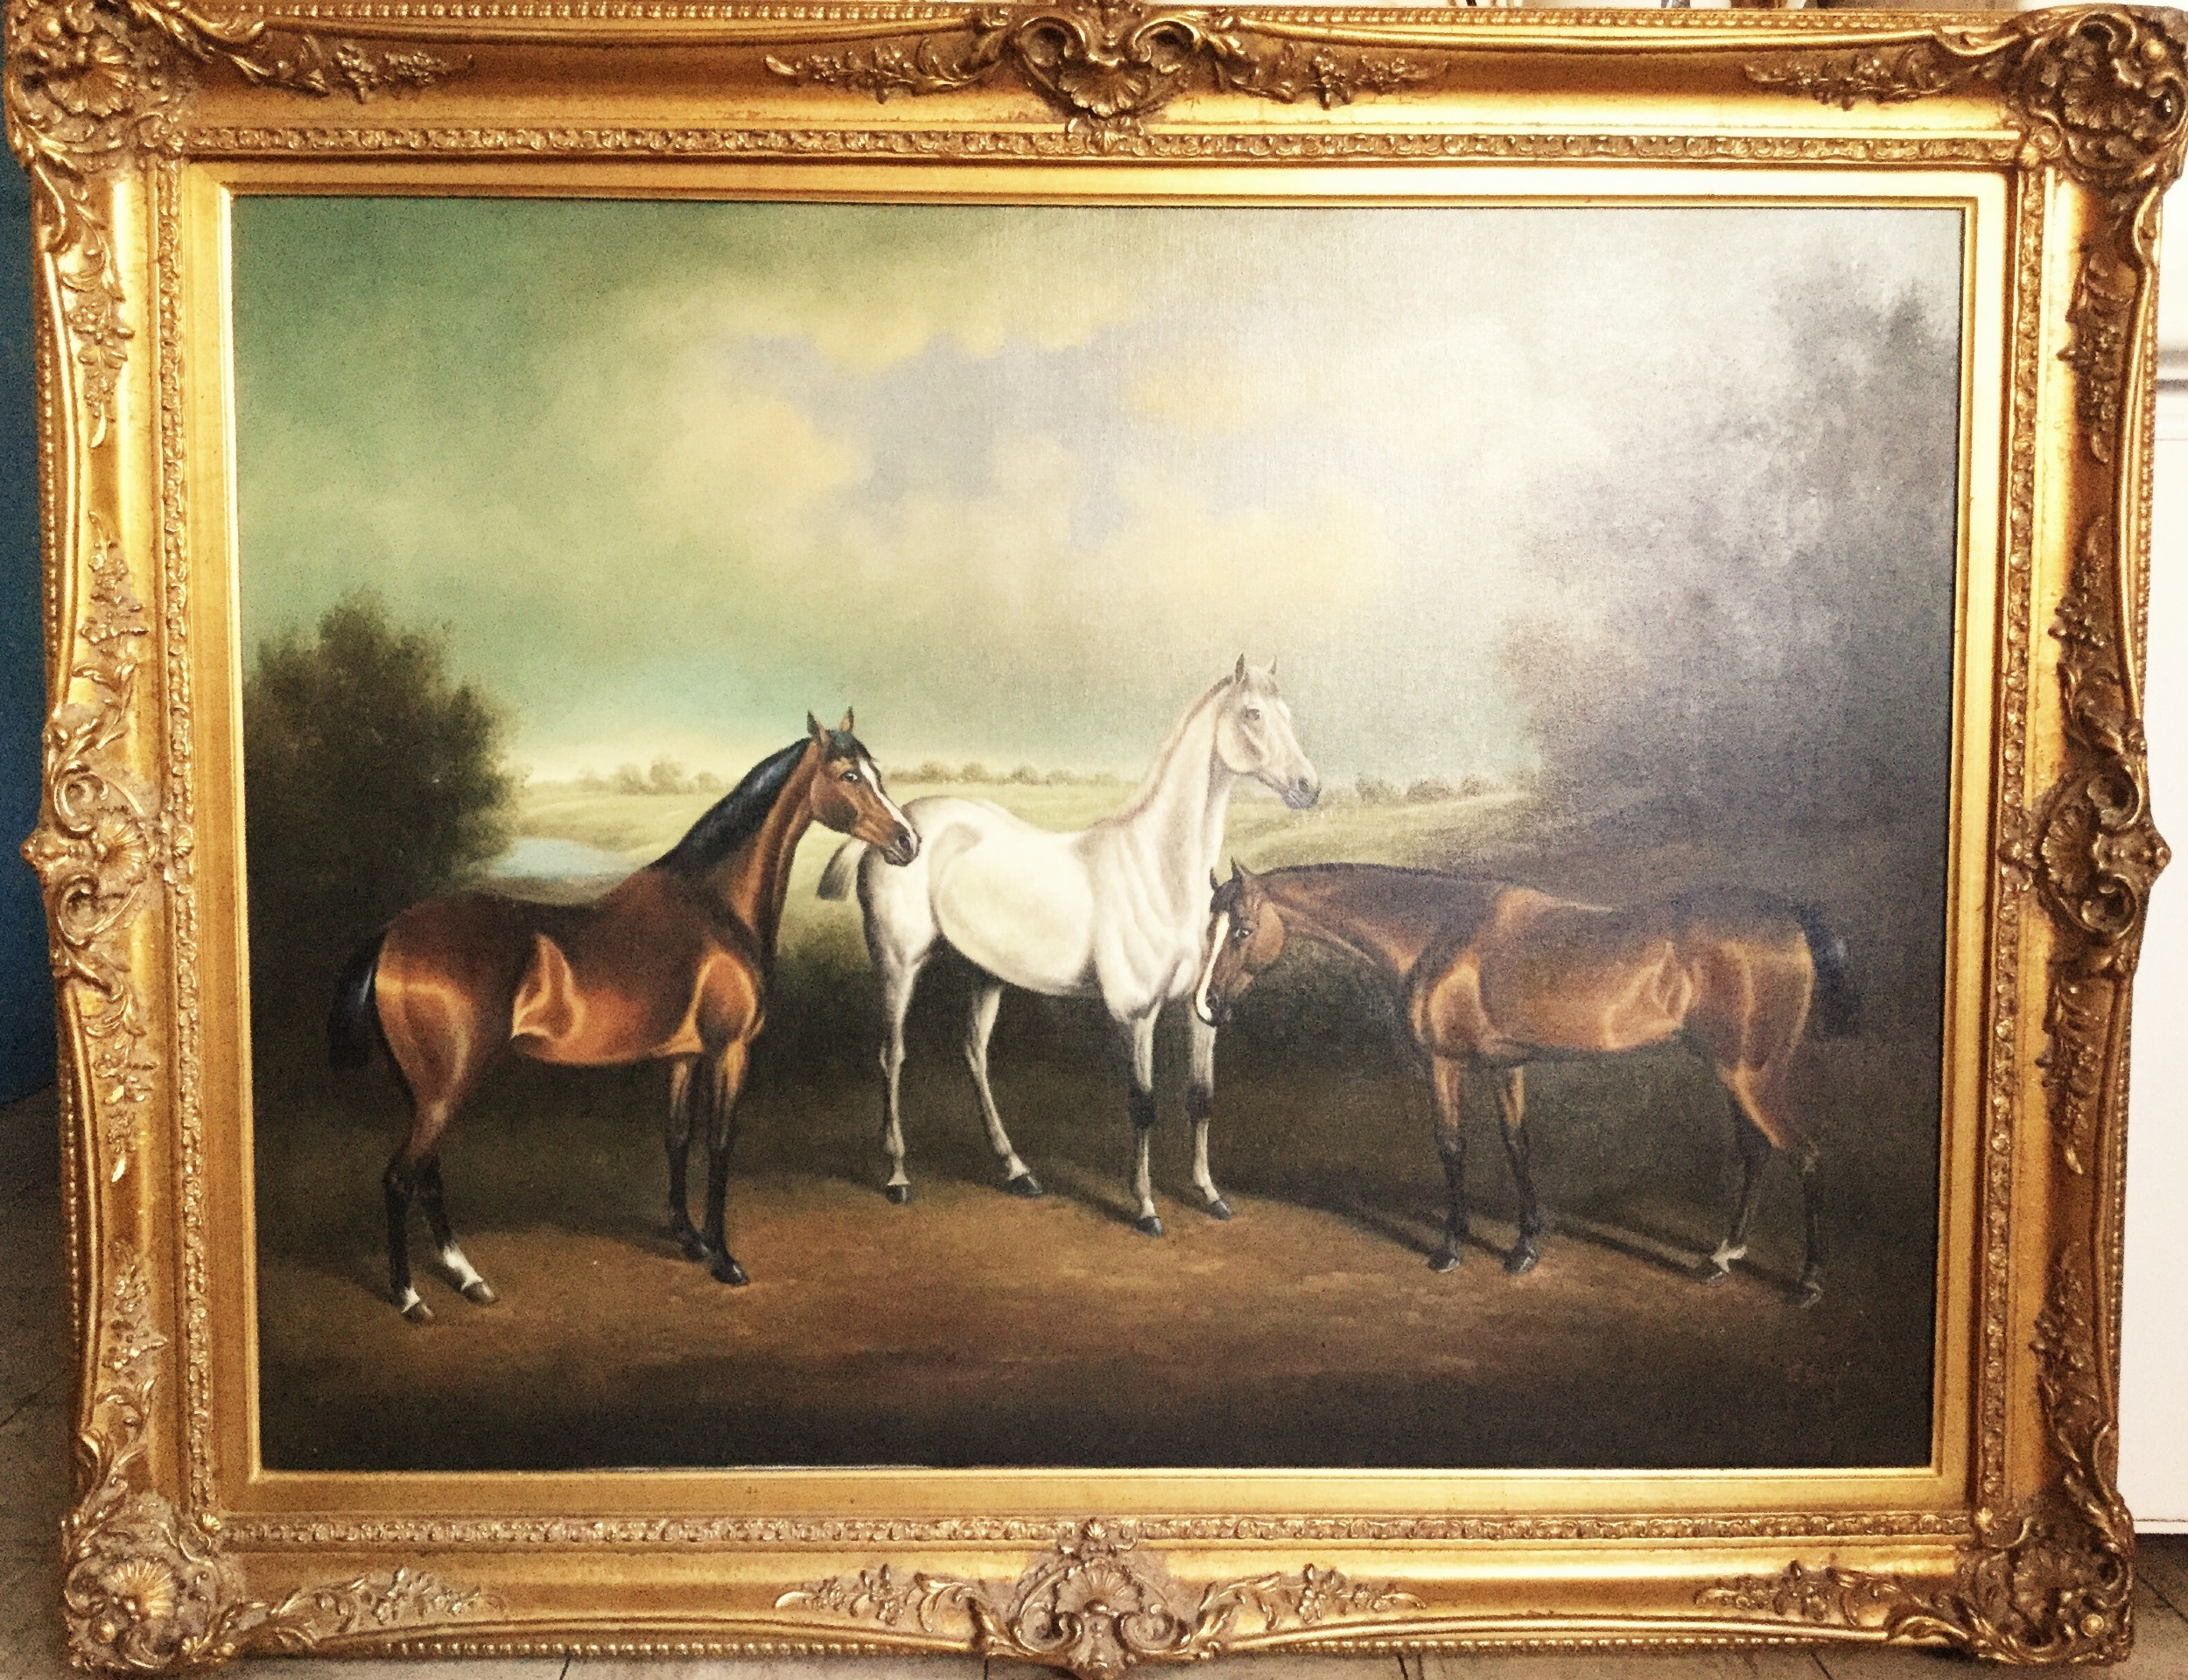 Fine Antique Art Large Oil Painting On Canvas Of Horses In